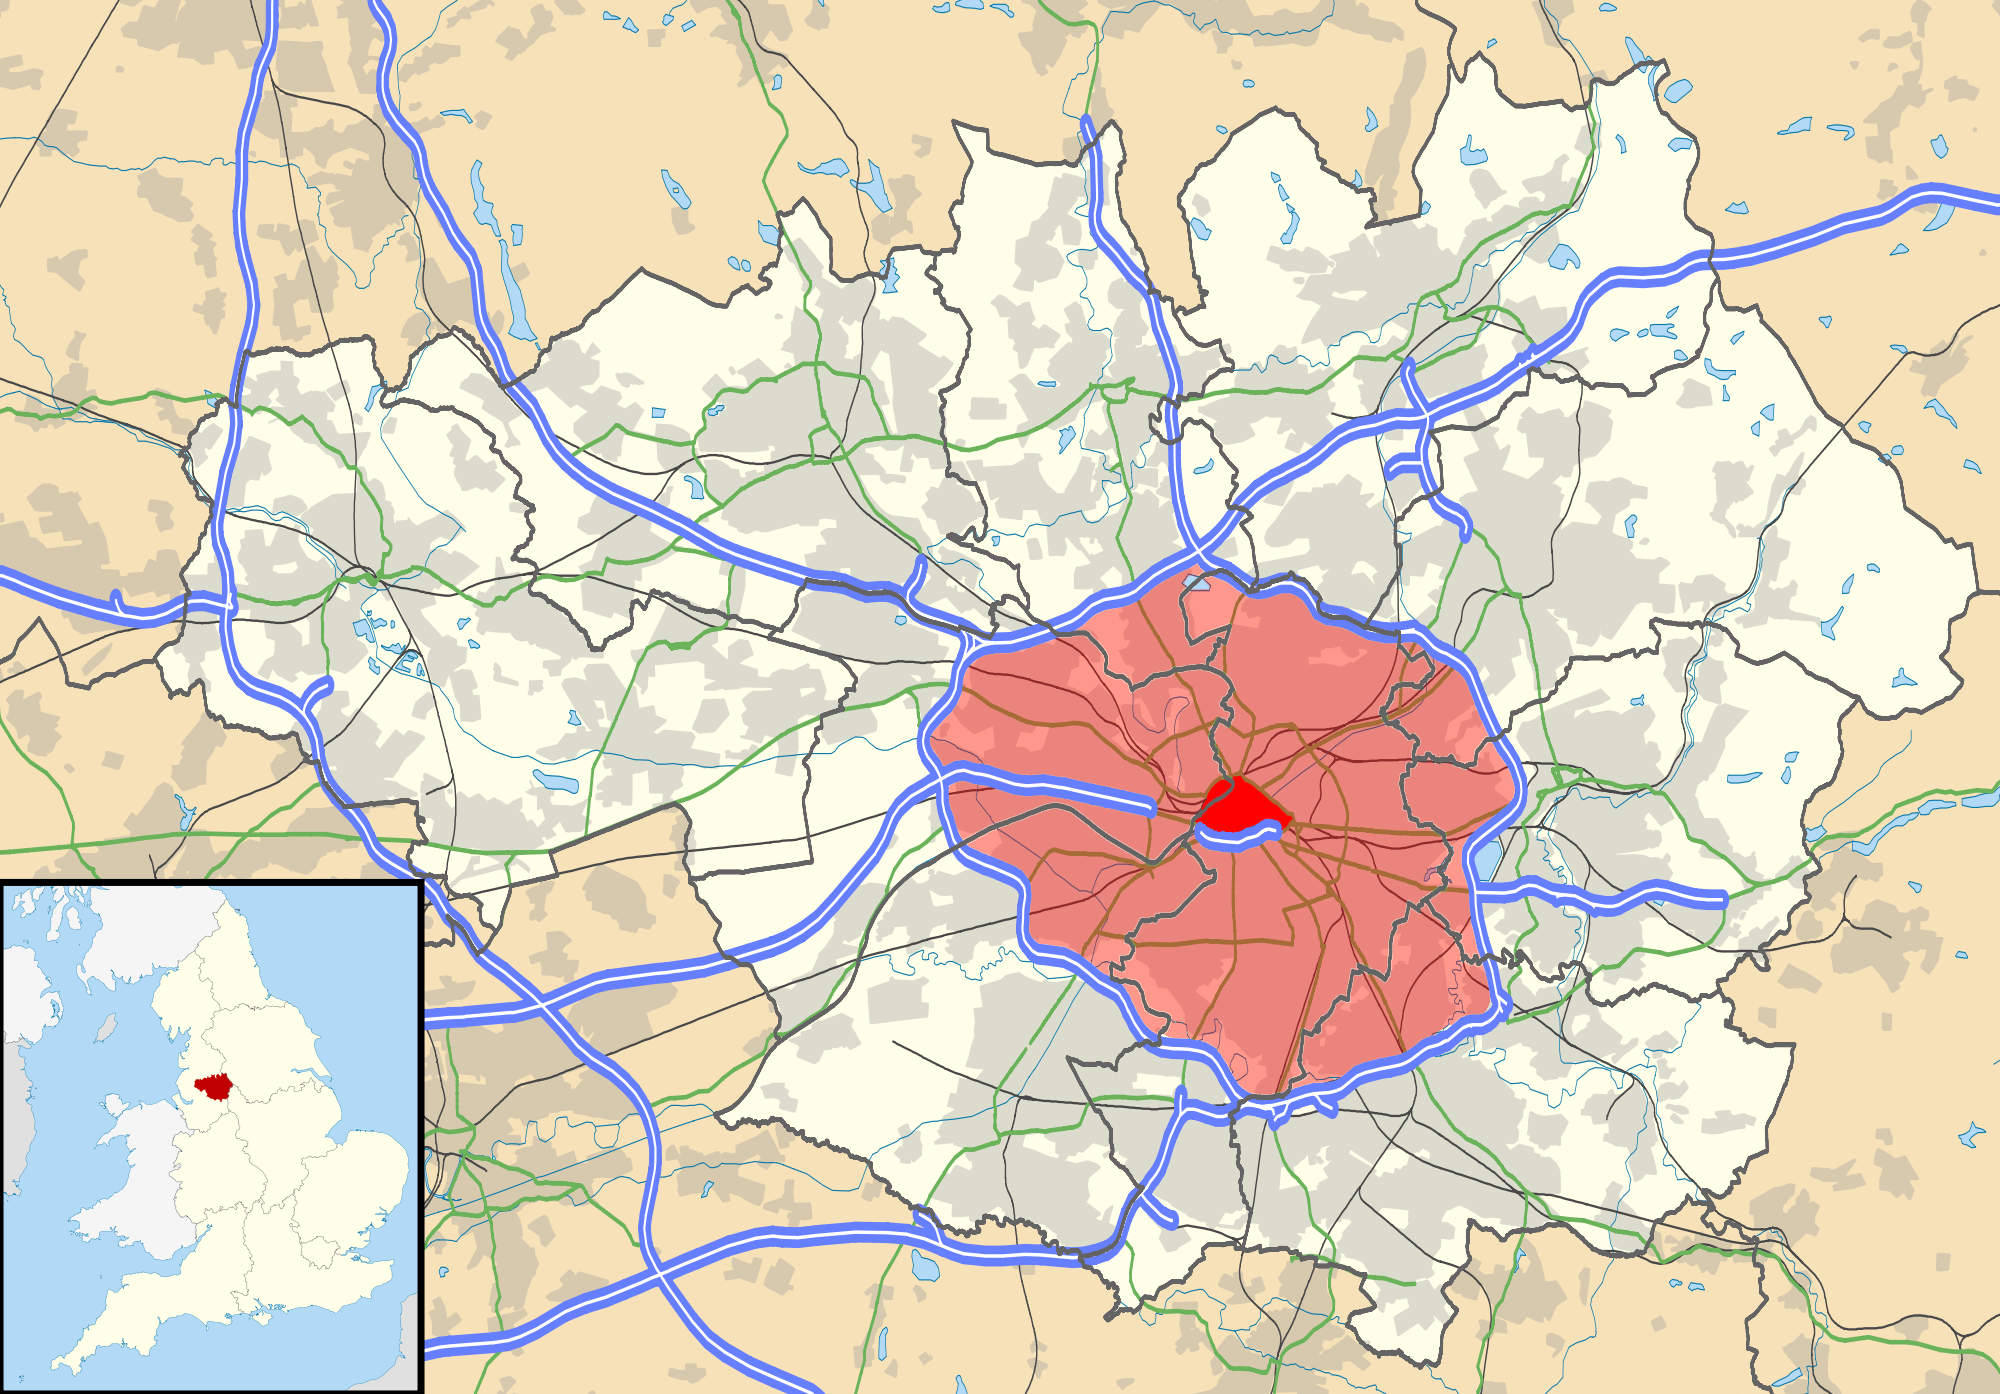 Proposed Manchester congestion charging zones